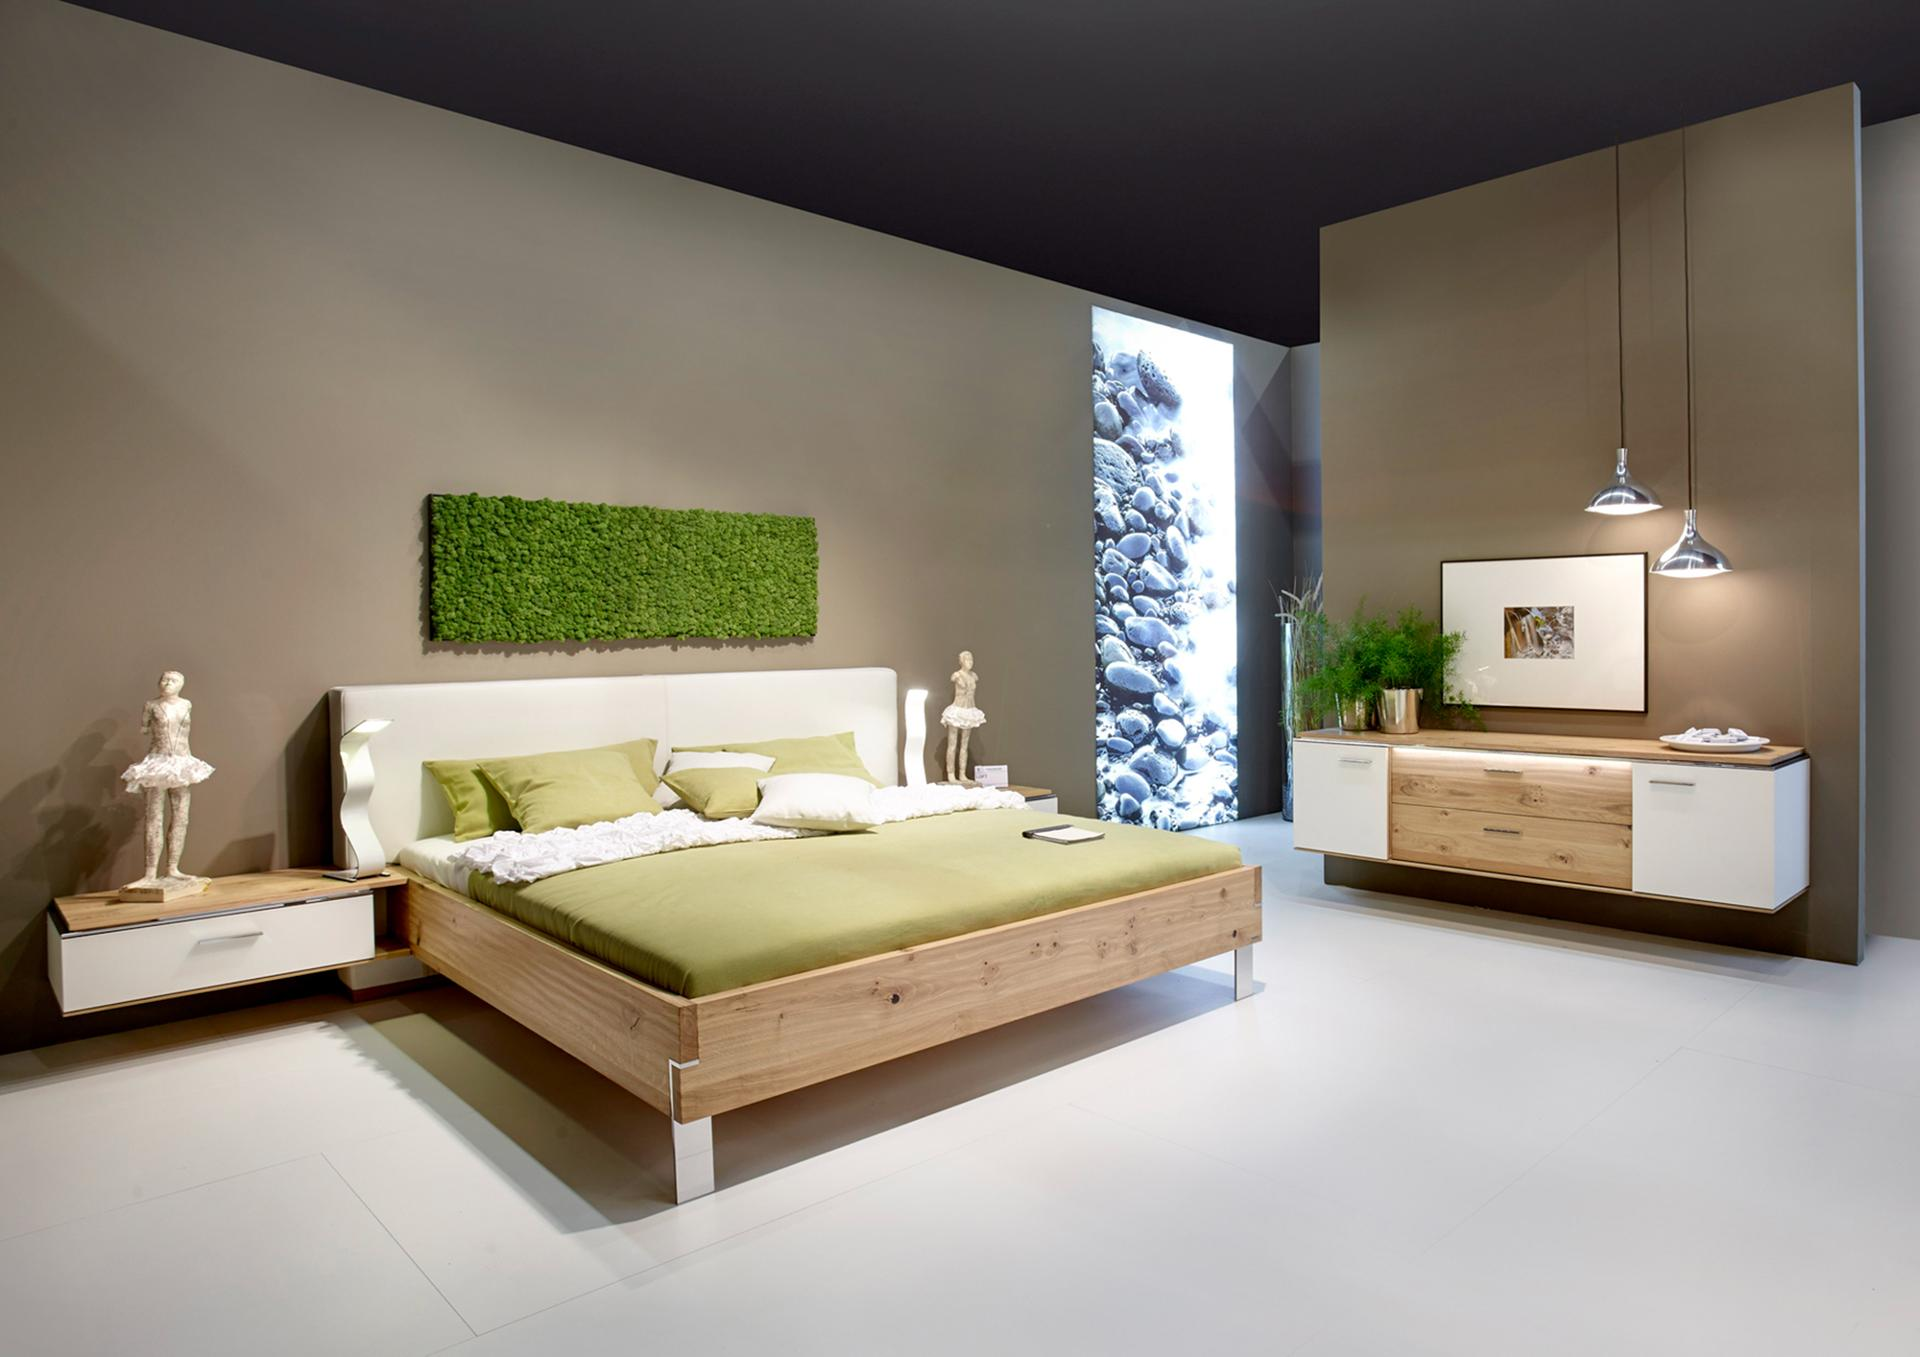 schlafzimmer gestalten farben. Black Bedroom Furniture Sets. Home Design Ideas